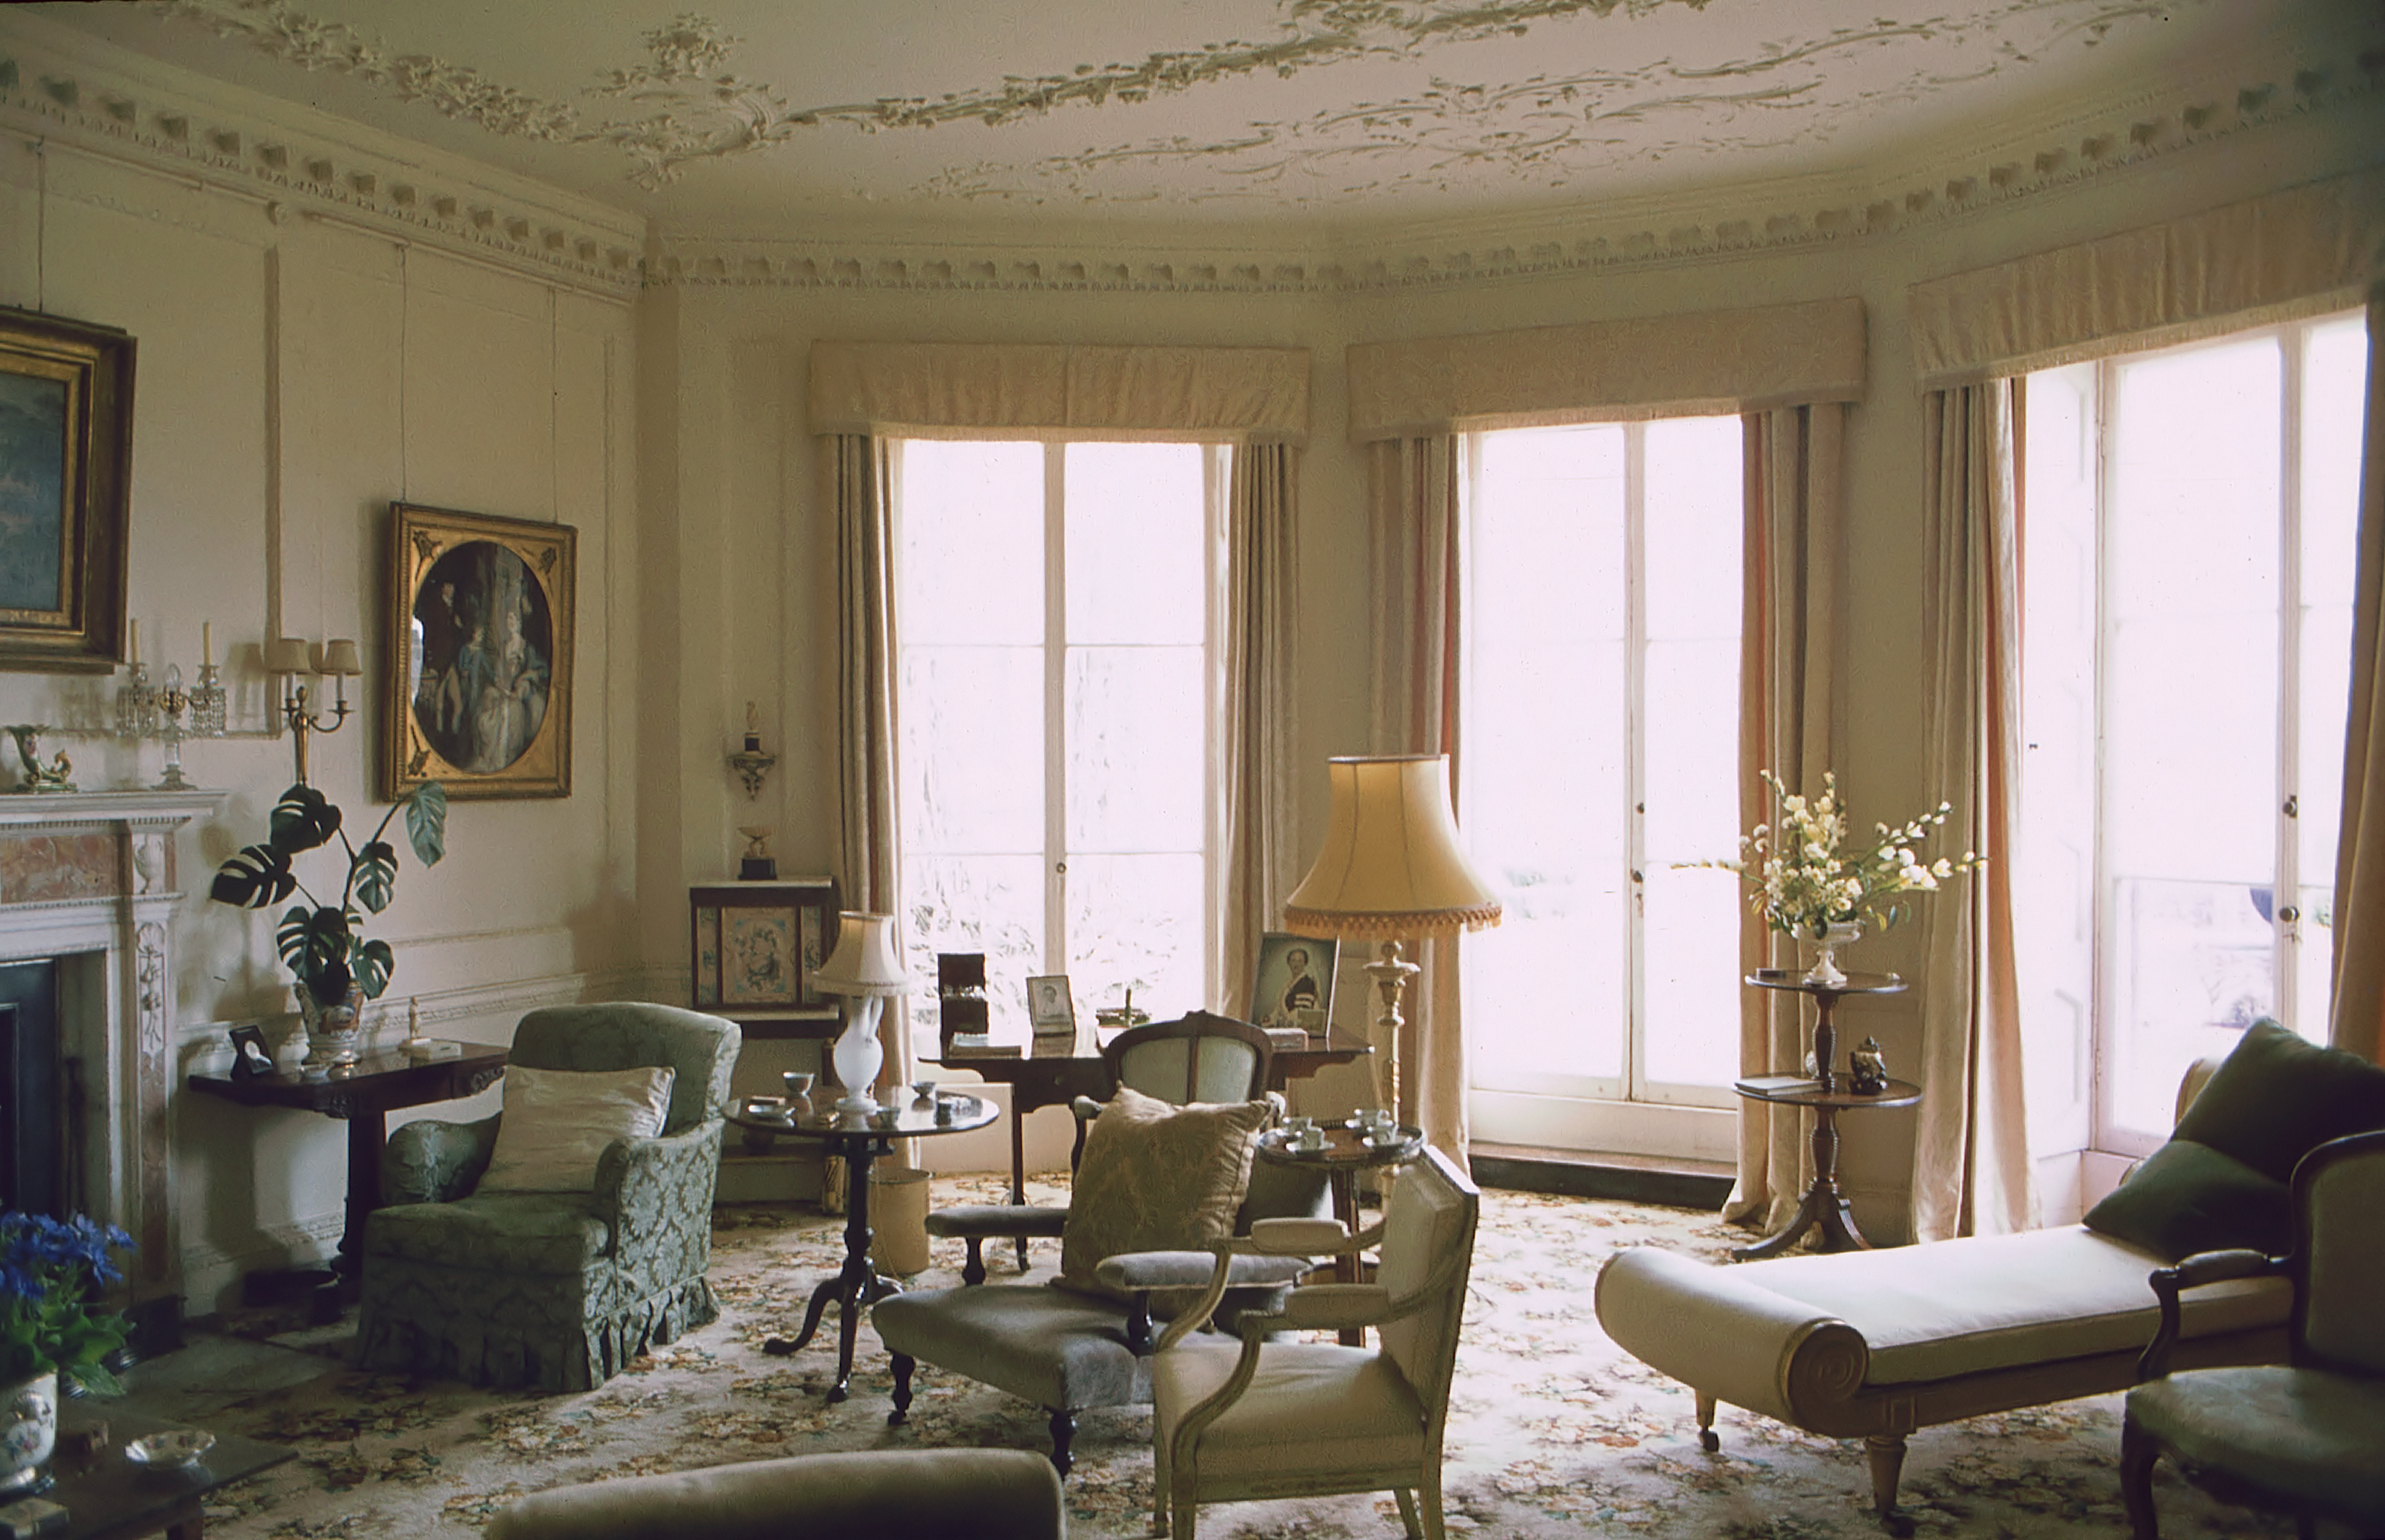 File:Powderham Castle Drawing Room.jpg - Wikimedia Commons